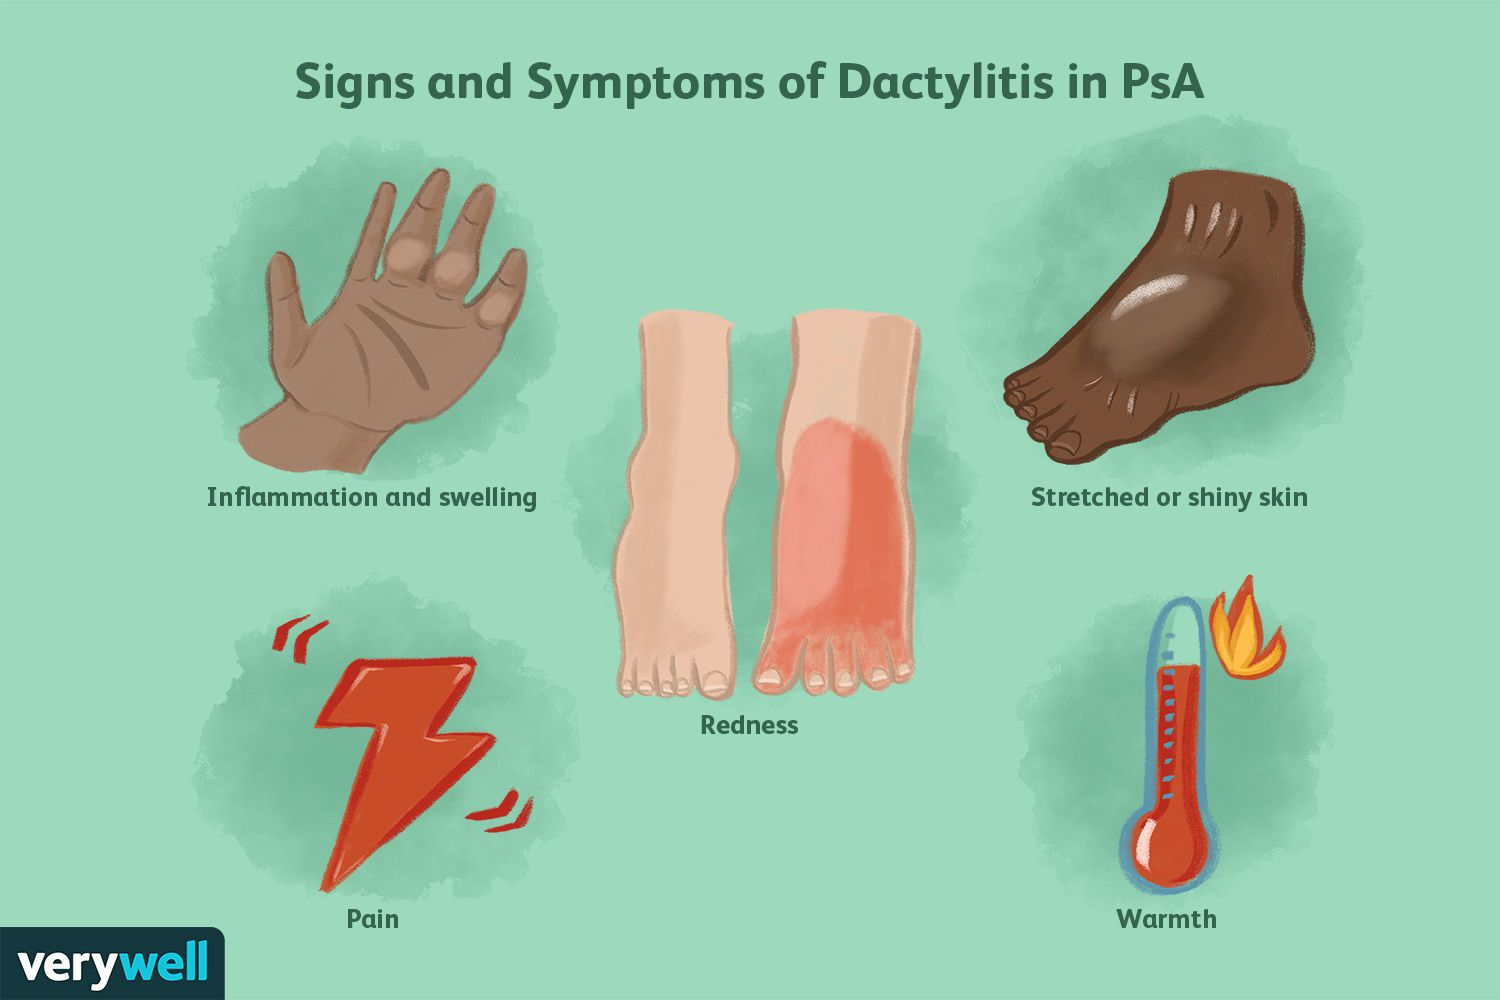 Signs and Symptoms of Dactylitis in PsA